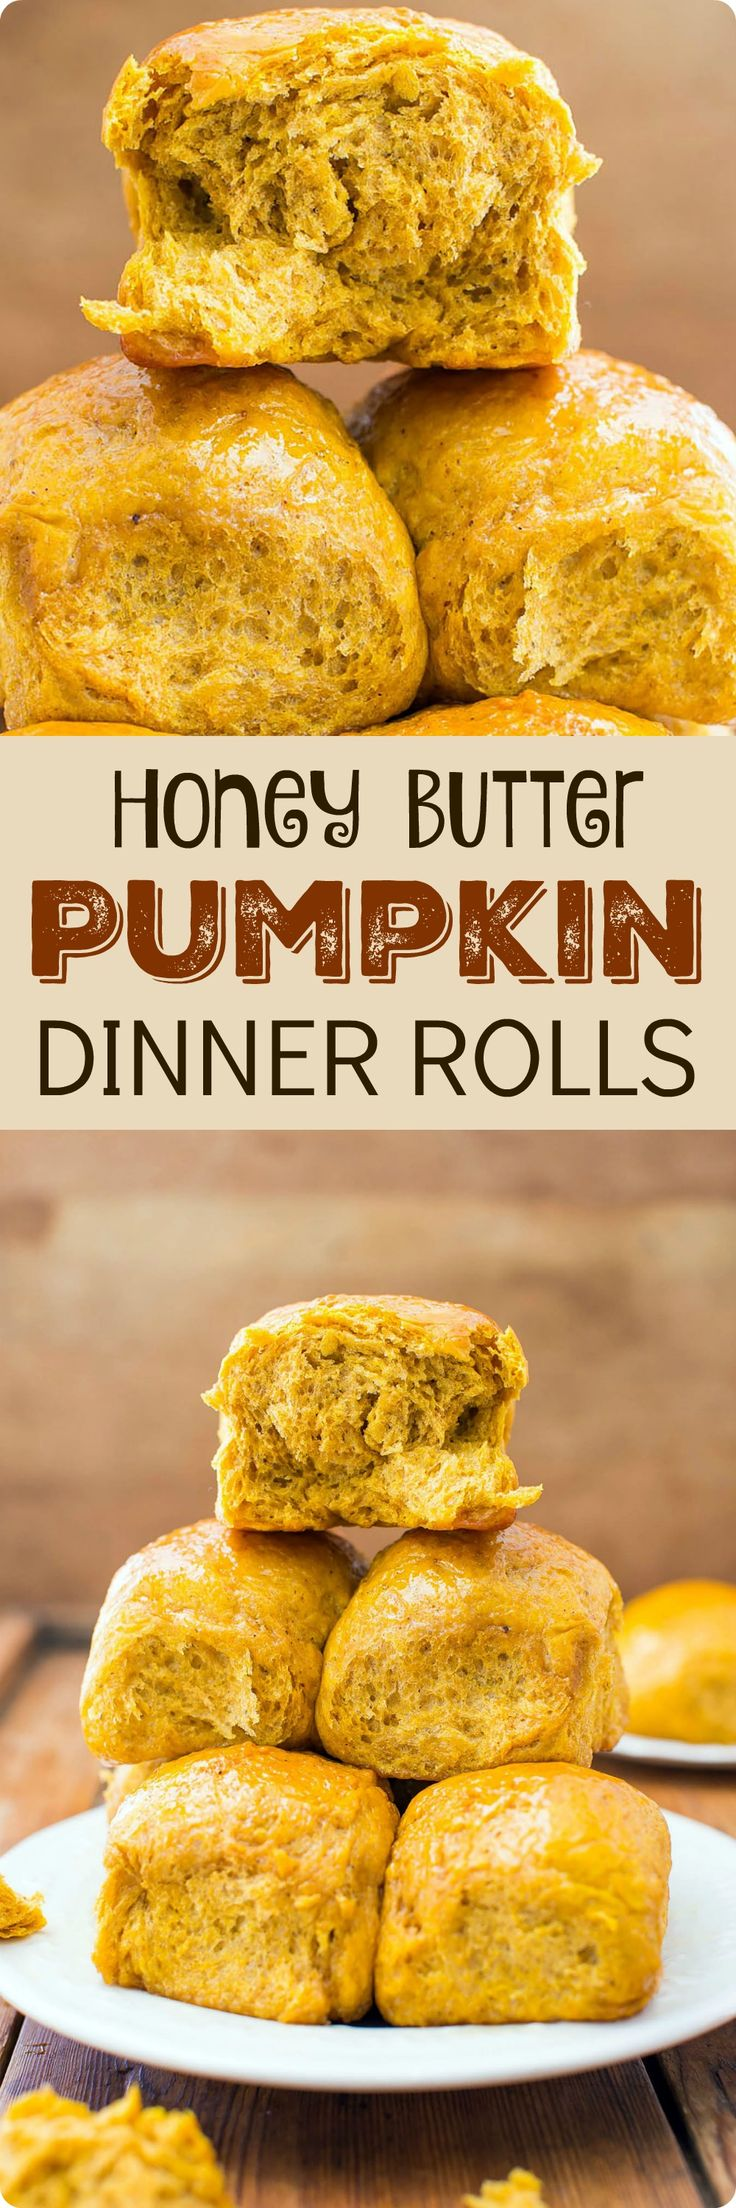 Honey Butter Pumpkin Dinner Rolls | The scents of pumpkin, spices, honey, and bread baking that waft through the house are positively intoxicating. Find recipe at redstaryeast.com.